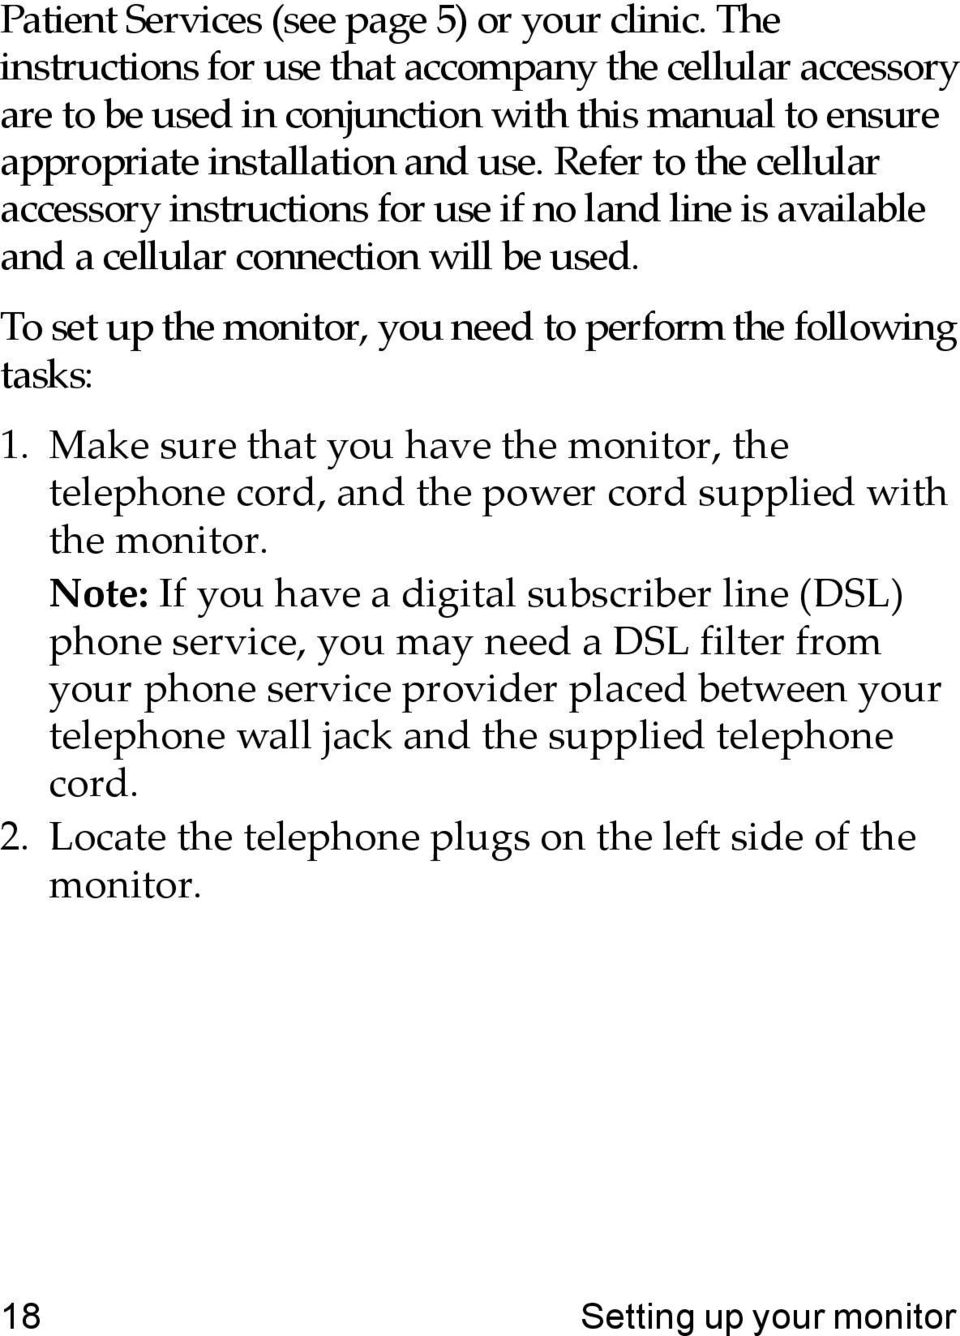 Refer to the cellular accessory instructions for use if no land line is available and a cellular connection will be used. To set up the monitor, you need to perform the following tasks: 1.